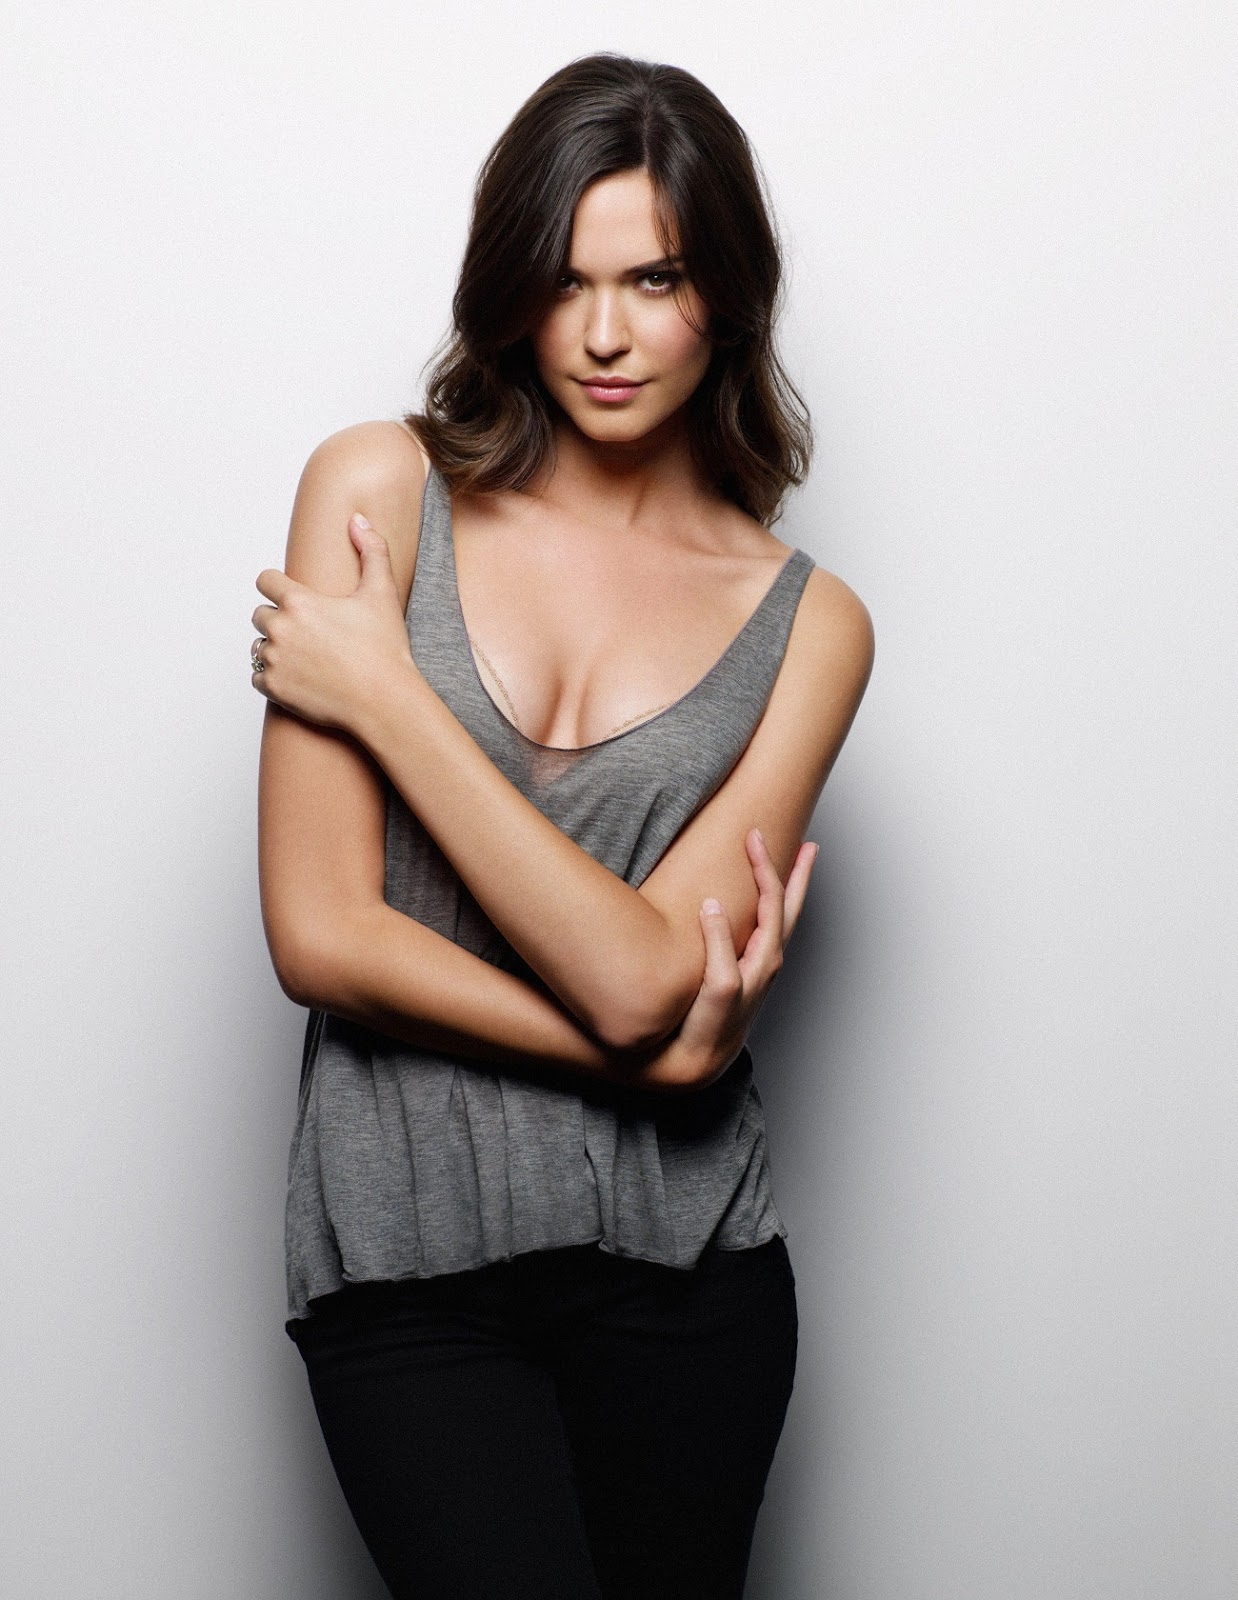 Hot Odette Annable nude photos 2019